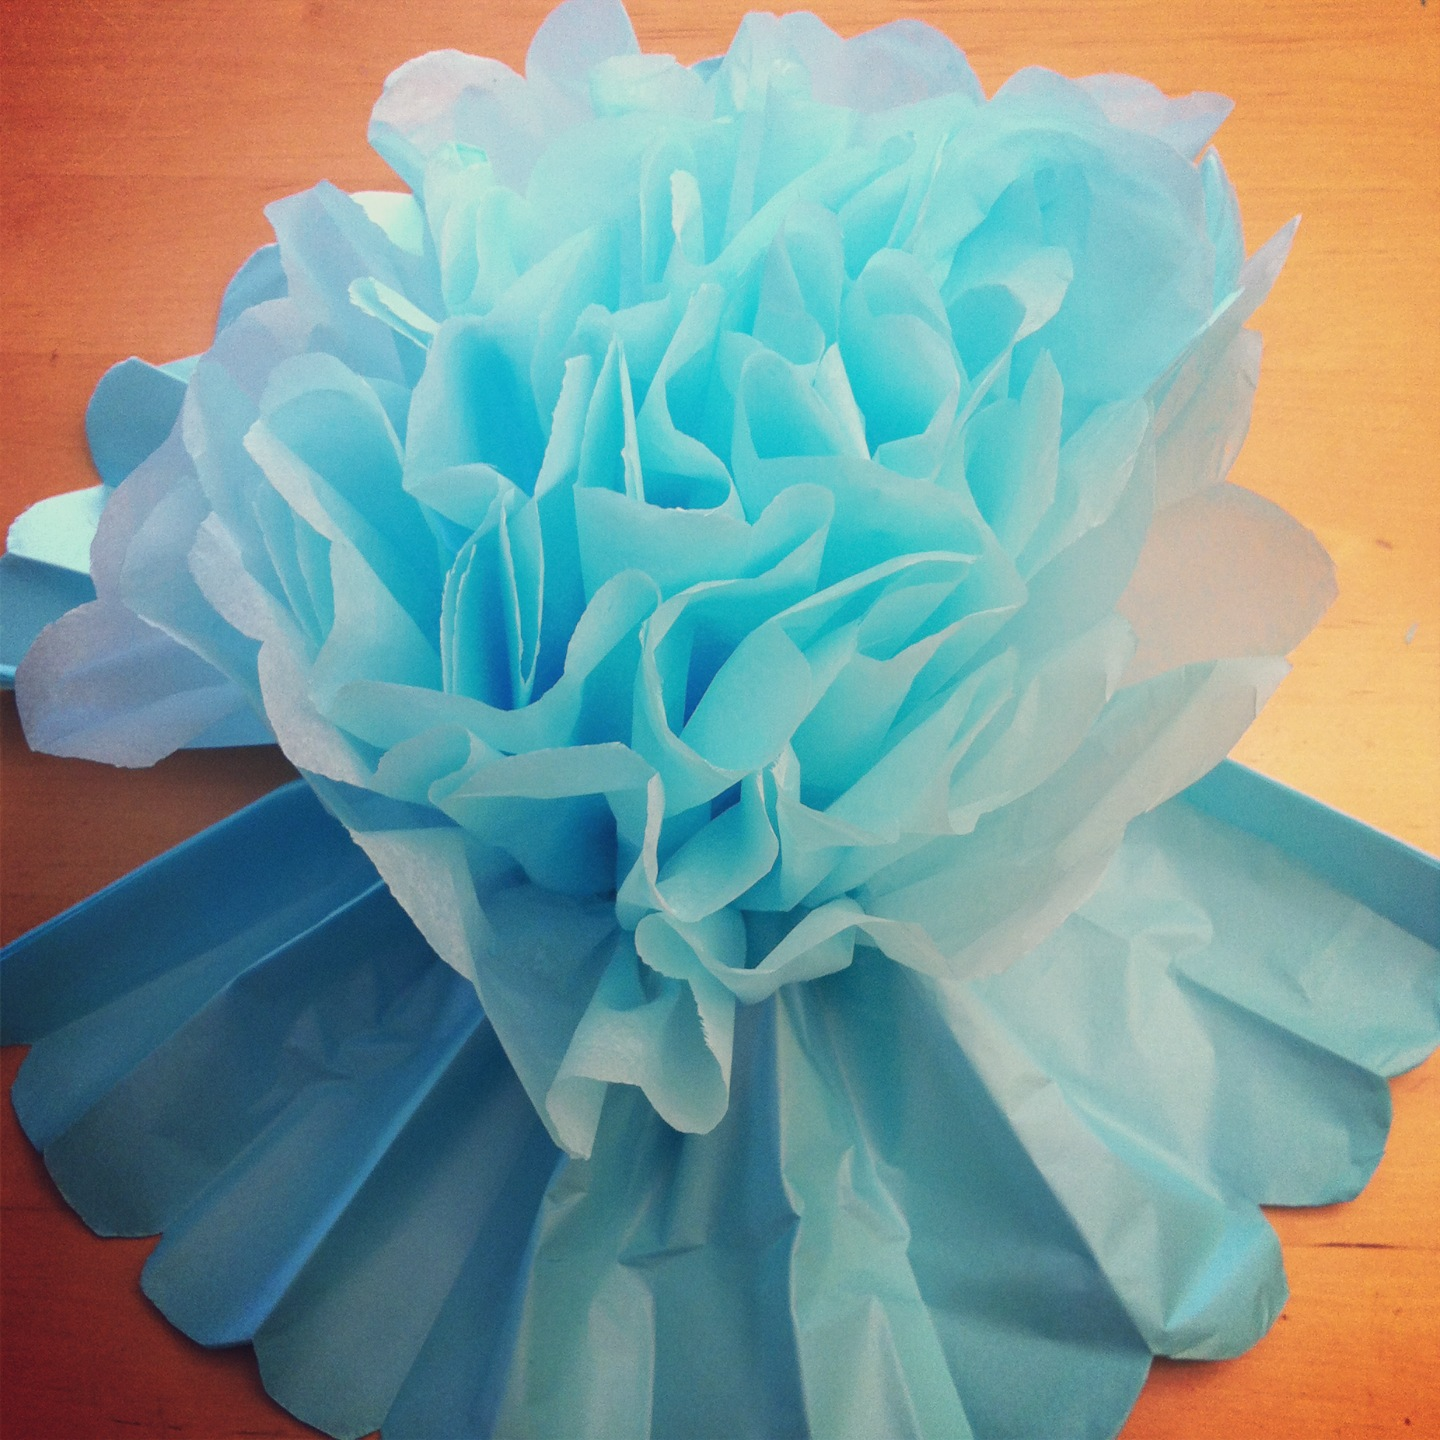 Diy Giant Tissue Paper Flowers Tutorial 2 For $100 Make Beautiful Birthday  Party Decorations Step 8